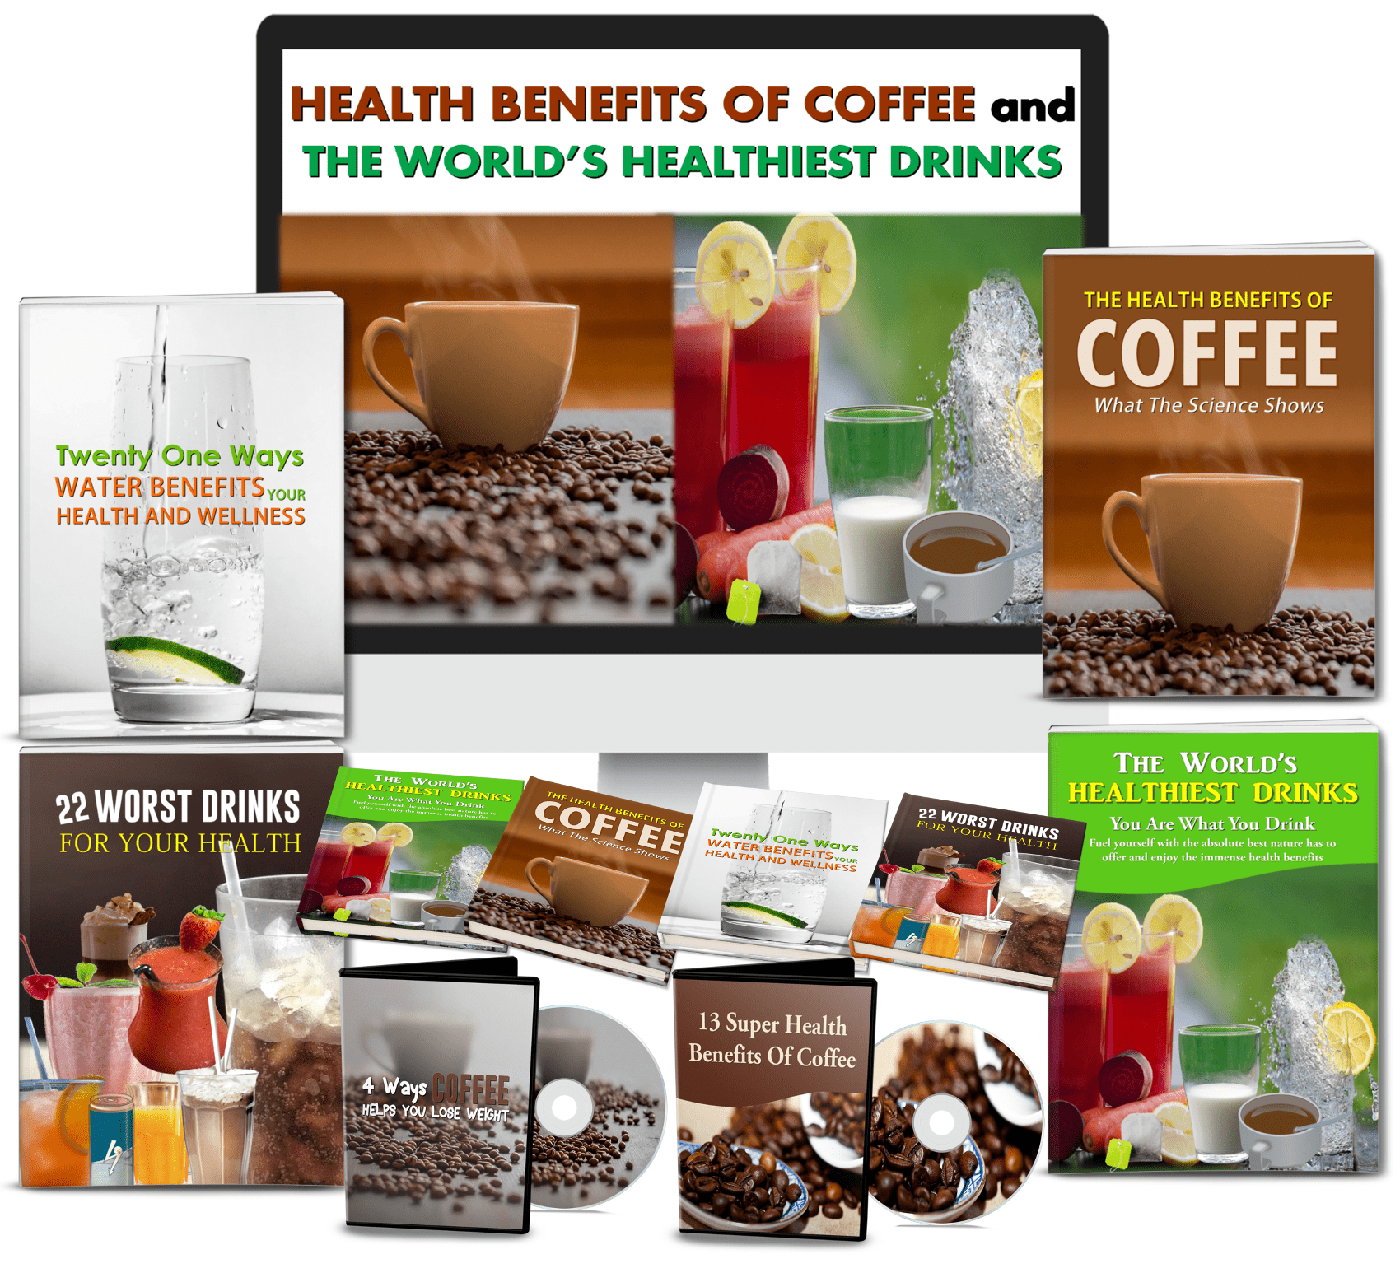 [New/Quality] Health Benefits Of Coffee & World's Healthiest Drinks 300+ Piece PLR Bundle Review – SHOULD YOU GET IT? : Brand New, Never Sold Or Used Before The Health Benefits Of Coffee & World's Healthiest Drinks – Giant Content Pack With Private Label Rights